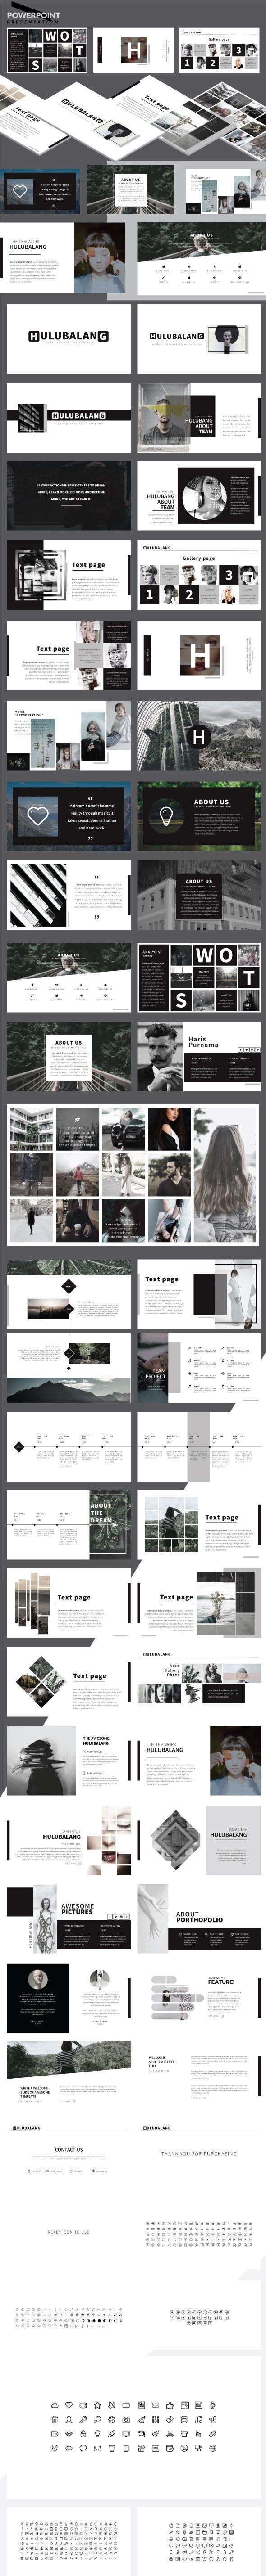 HULUBALANG - Minimal Powerpoint Presentation - Business PowerPoint Templates